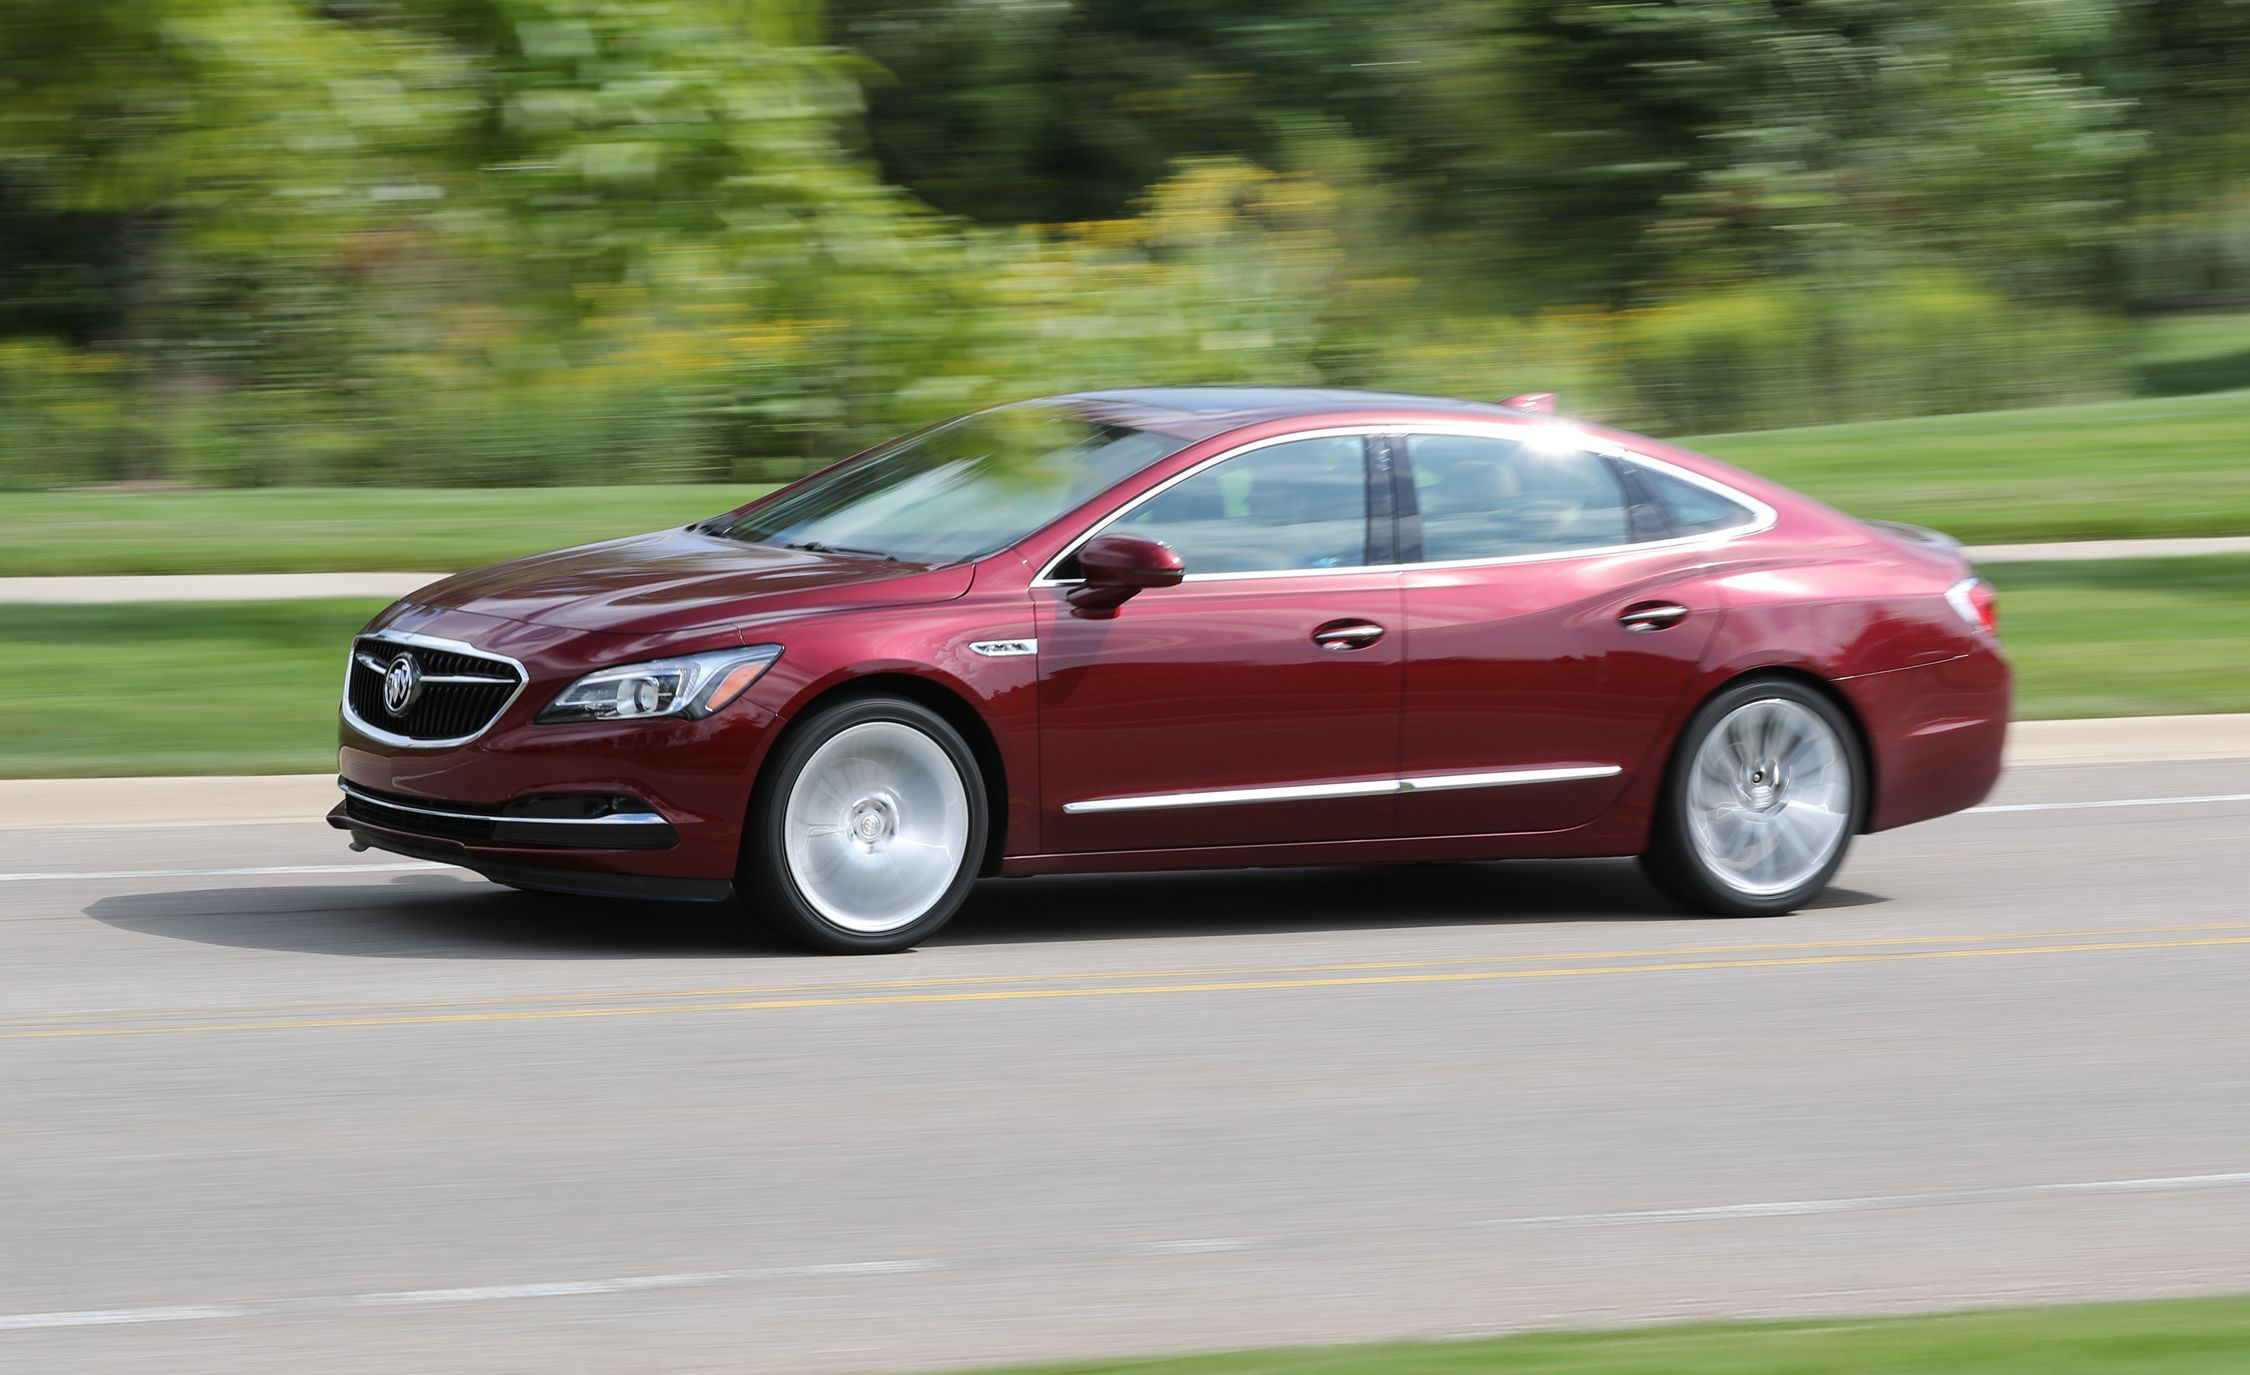 tisdale vehicles envision sk vehiclesearchresults sale for vehicle buick in used photo